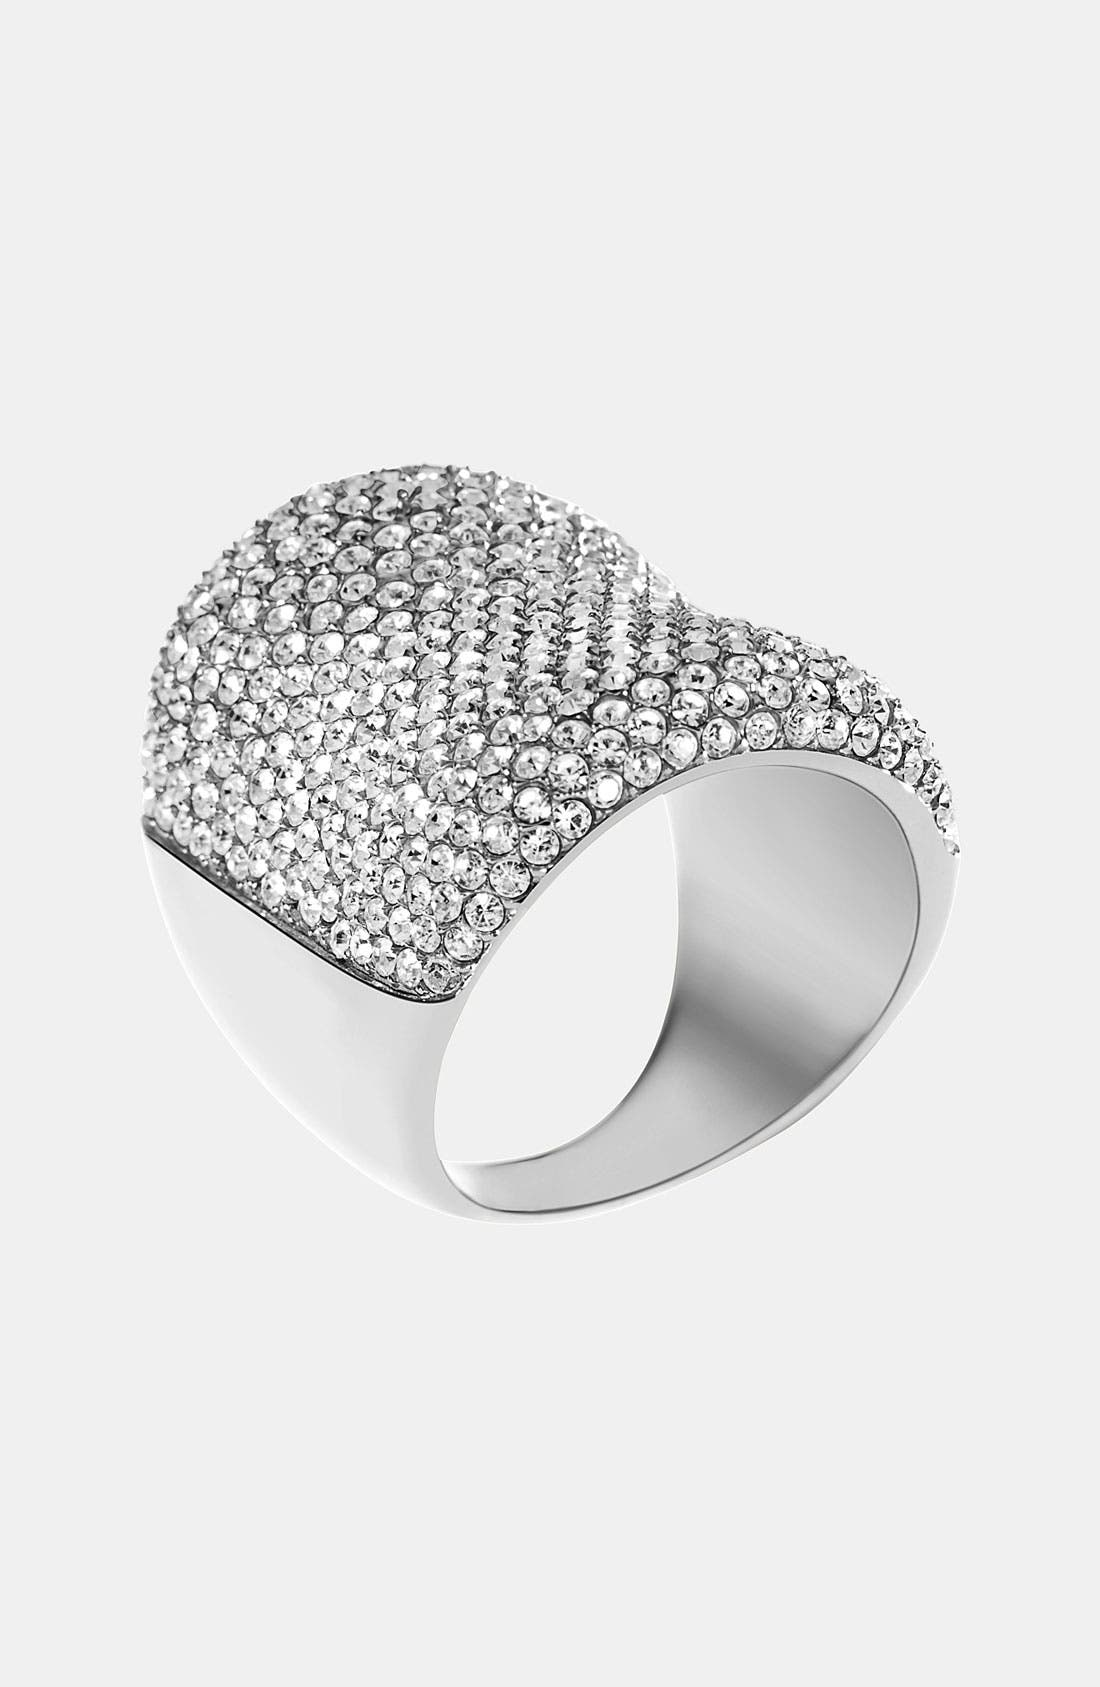 Main Image - Michael Kors 'Brilliance' Saddle Ring